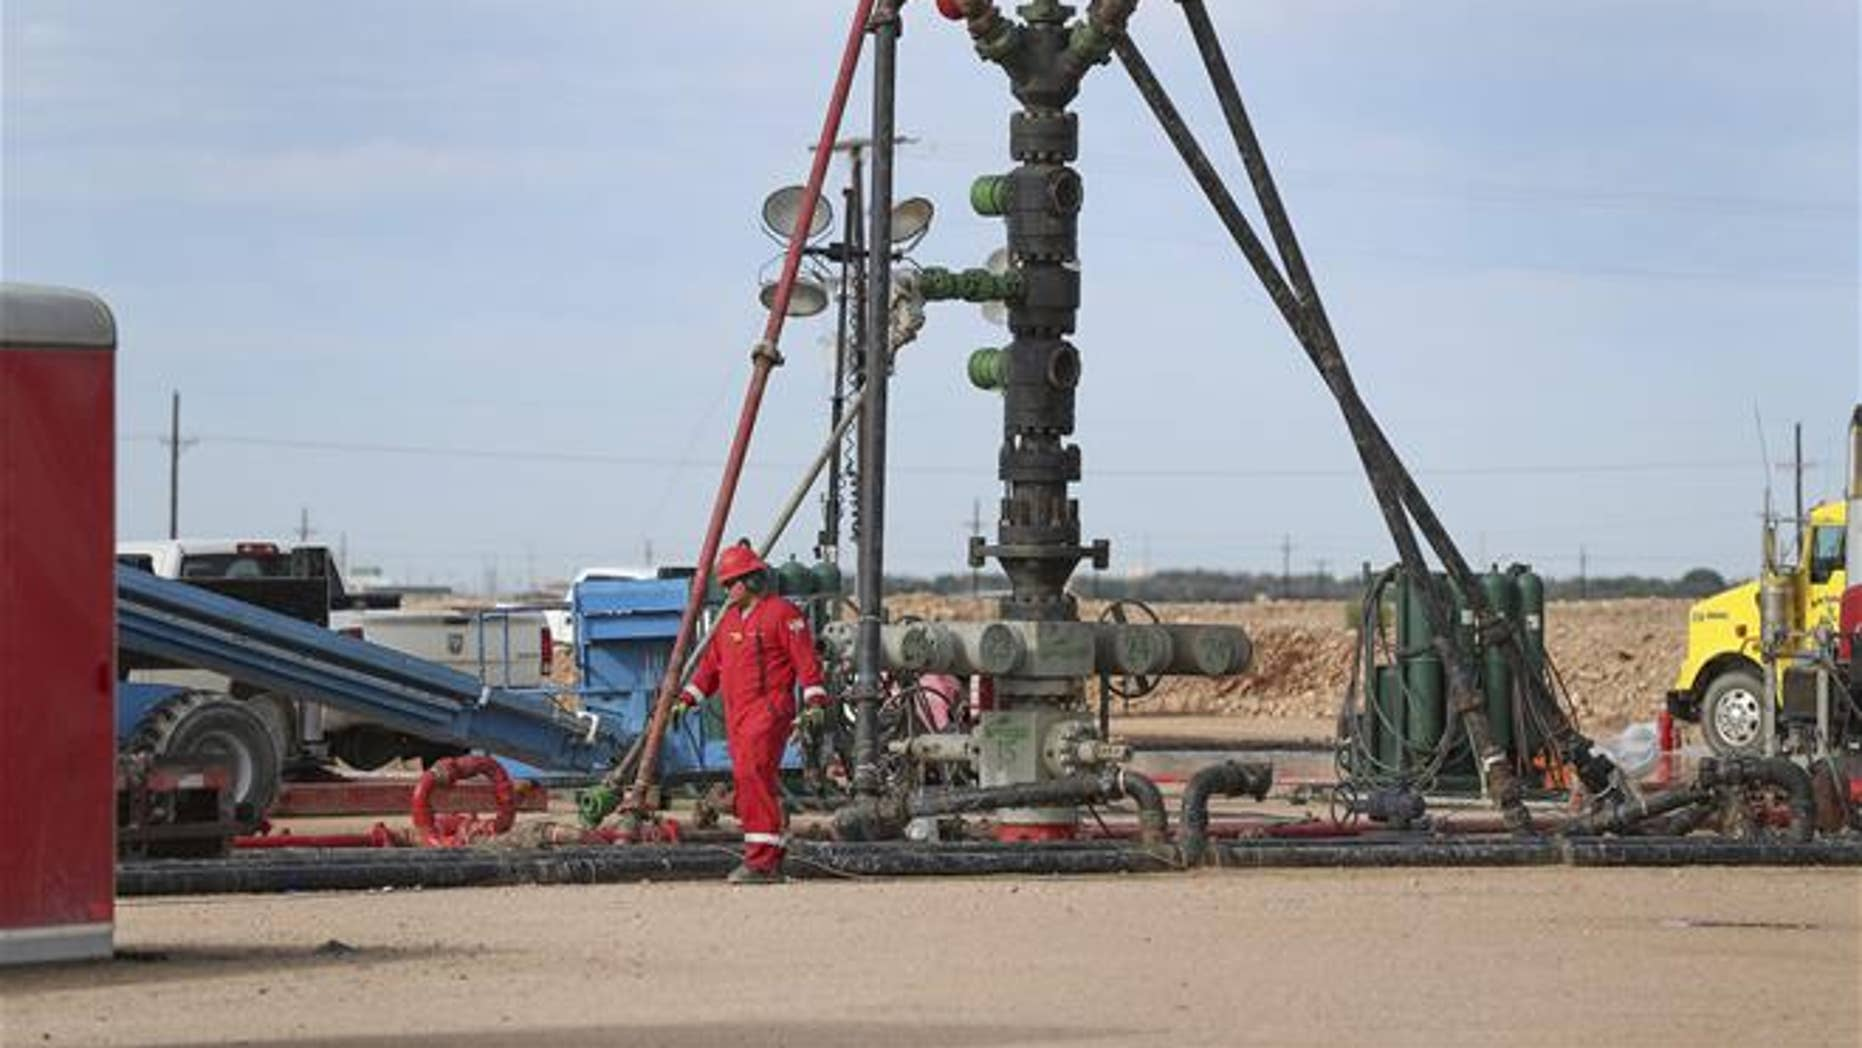 The researchers found that infants born within about a half-mile of a fracking site were 25 percent more likely to weigh 5.5 pounds or less.